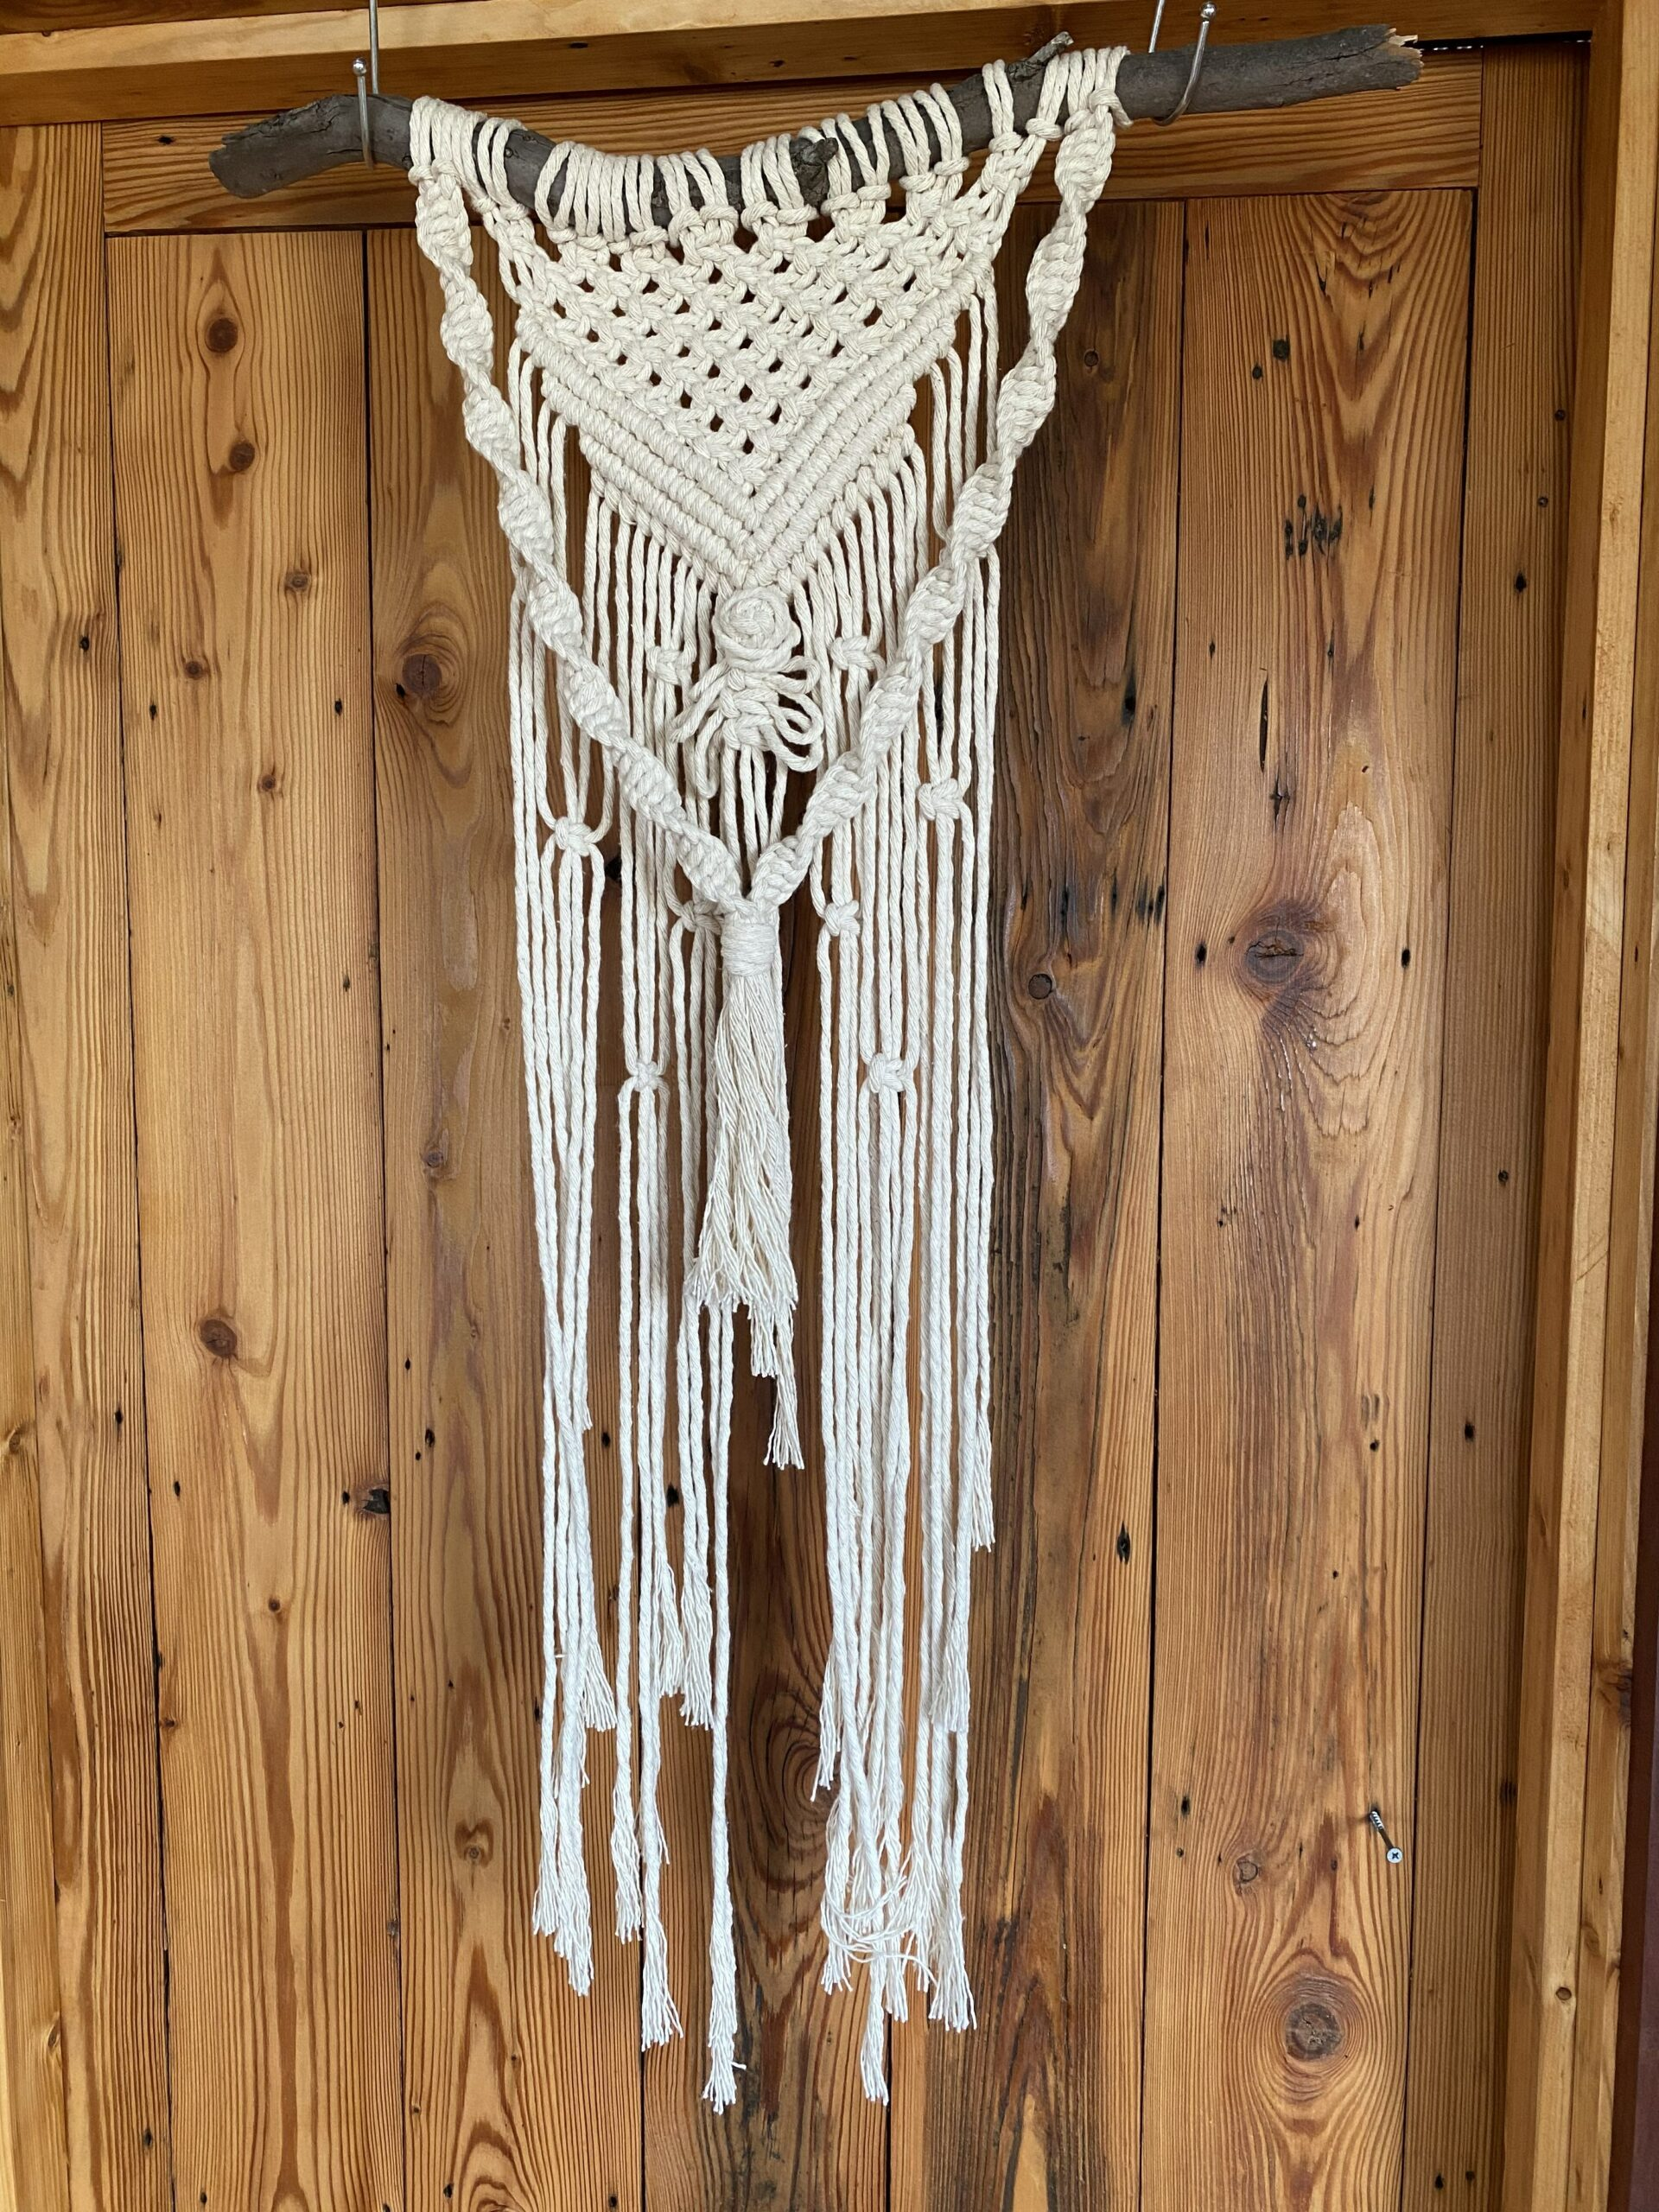 Introduction to Macrame